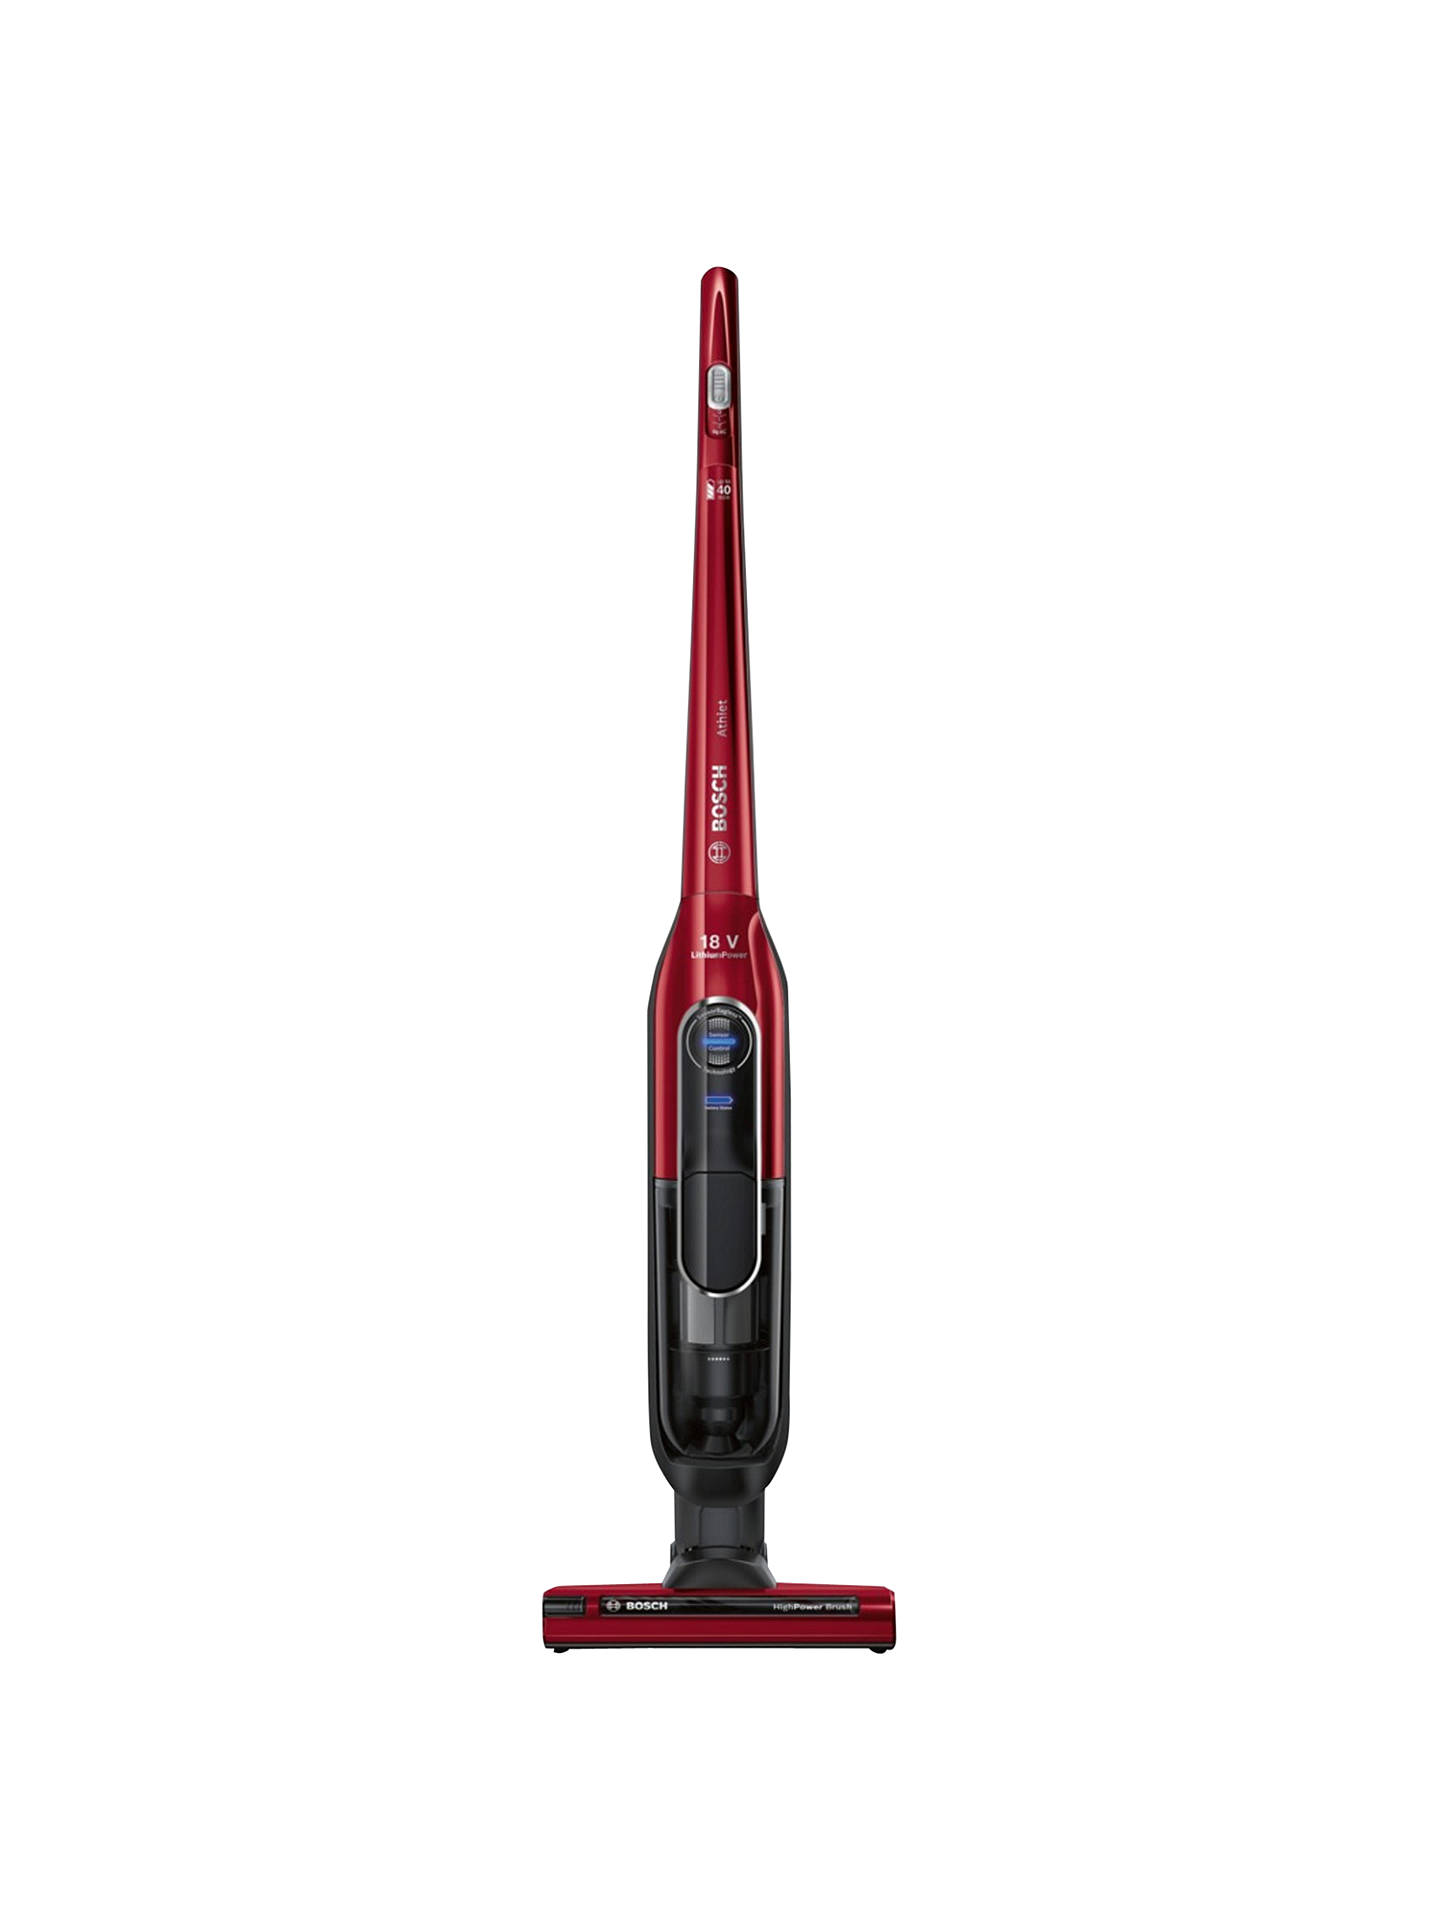 Bosch Athlet Bch6re8kgb 40 Minute Runtime Cordless Upright